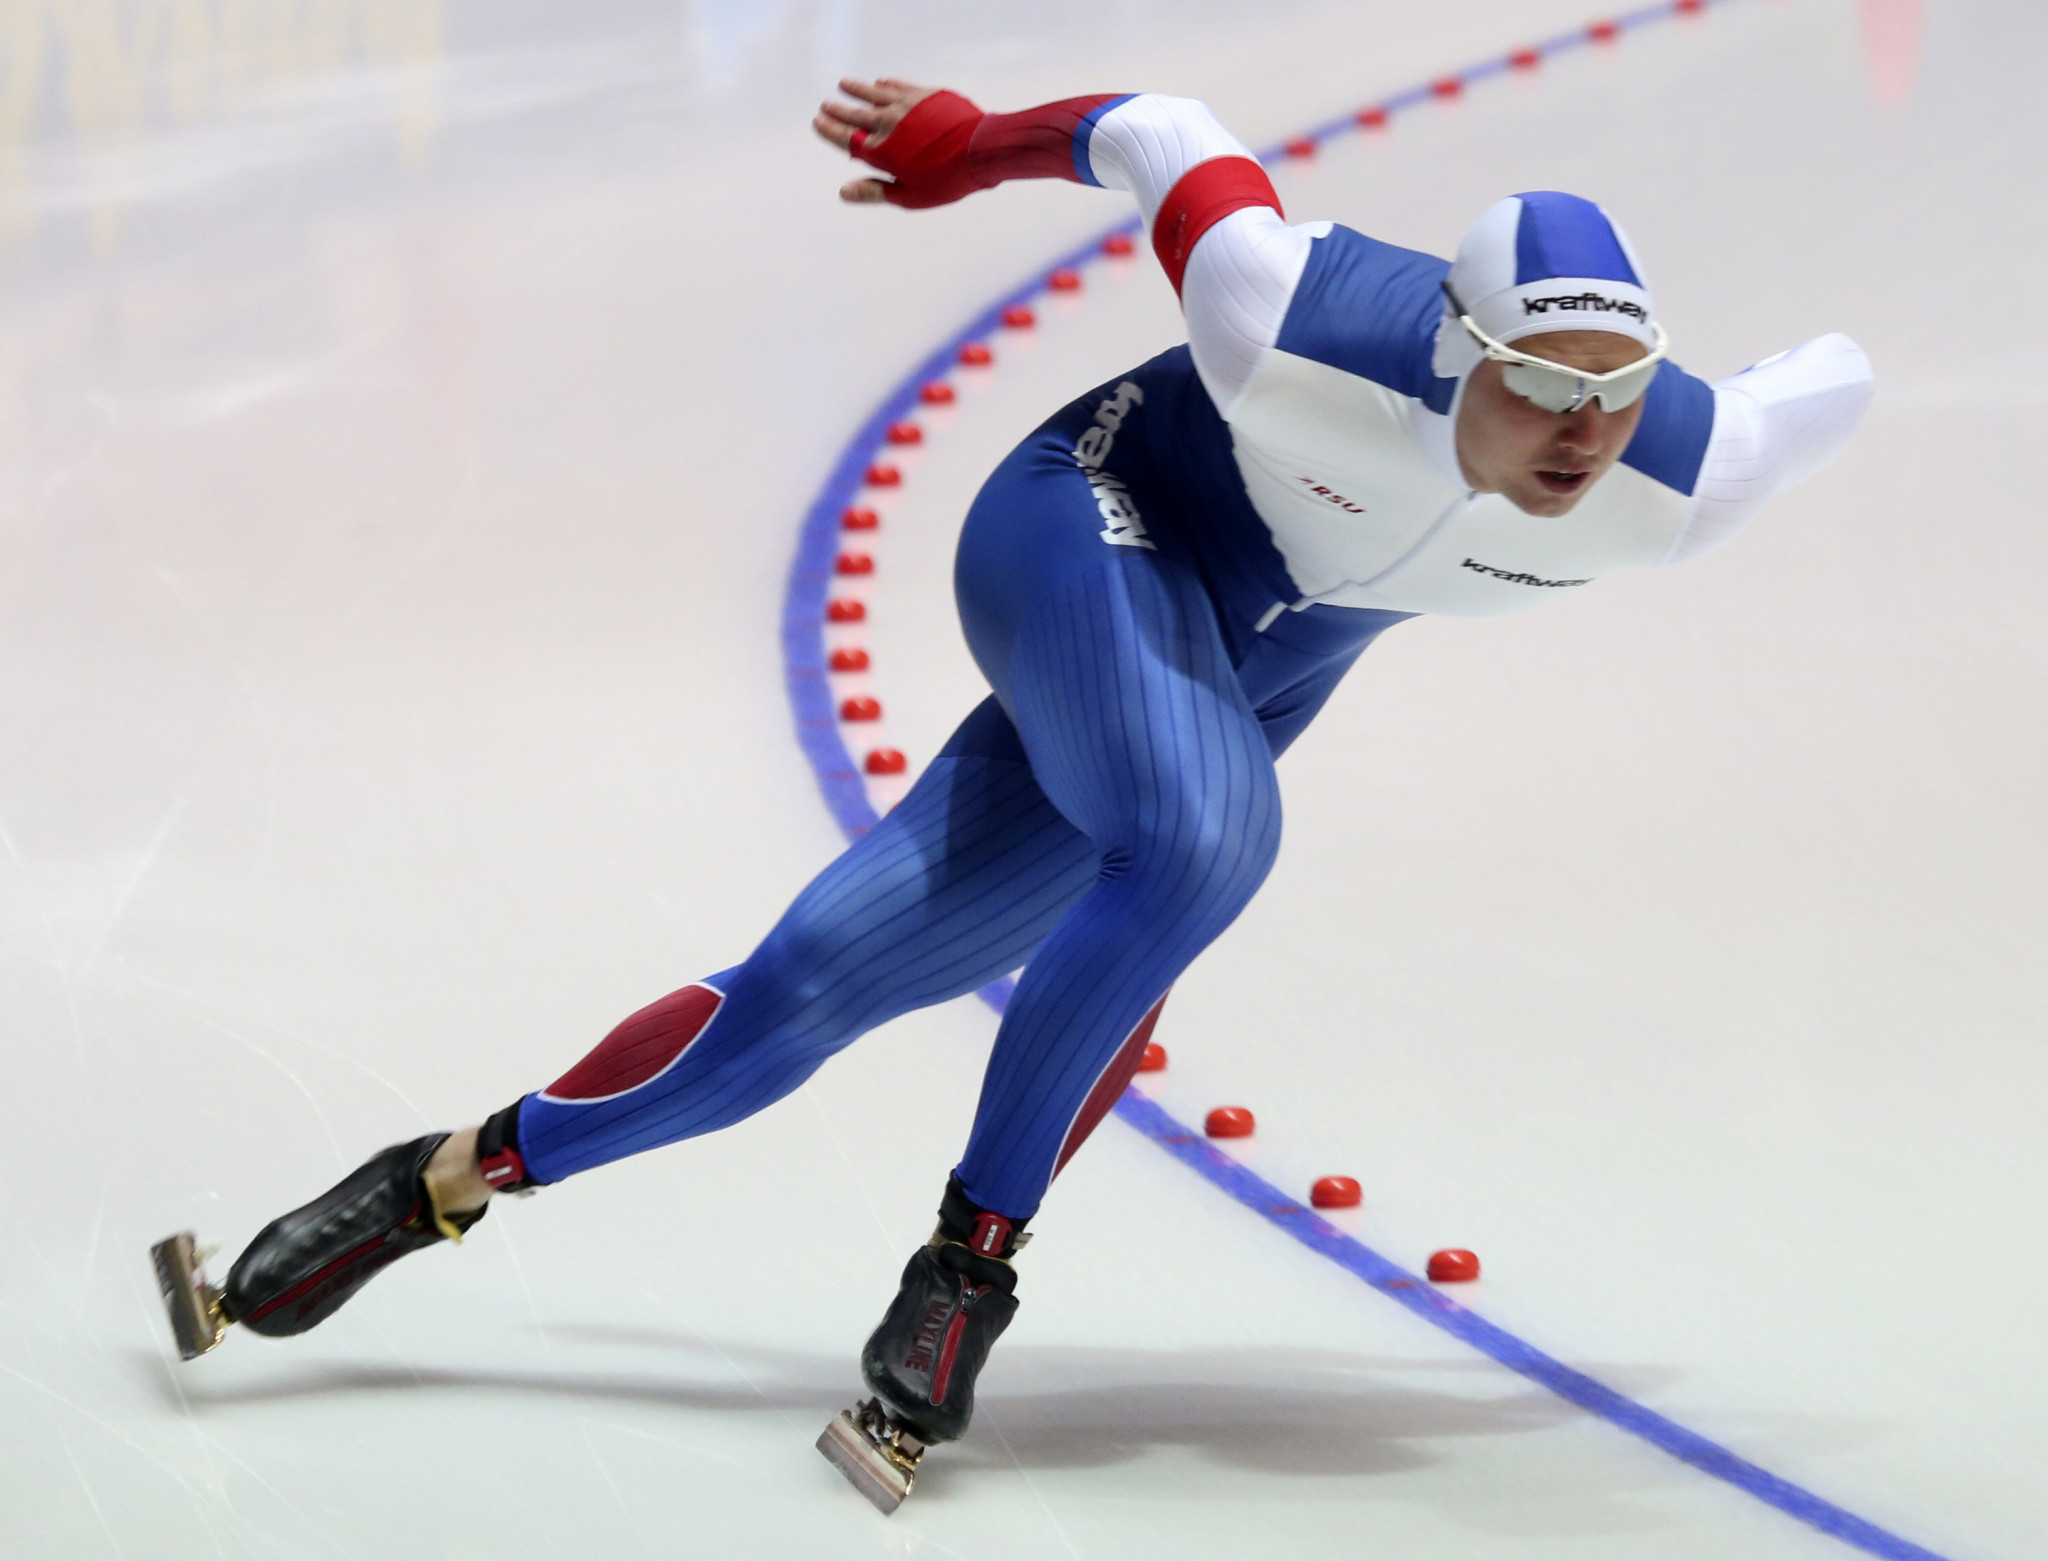 Russia's Pavel Kulizhnikov won the second 500m race at the ISU Speed Skating World Cup in Hamar, having won the same event yesterday ©Getty Images